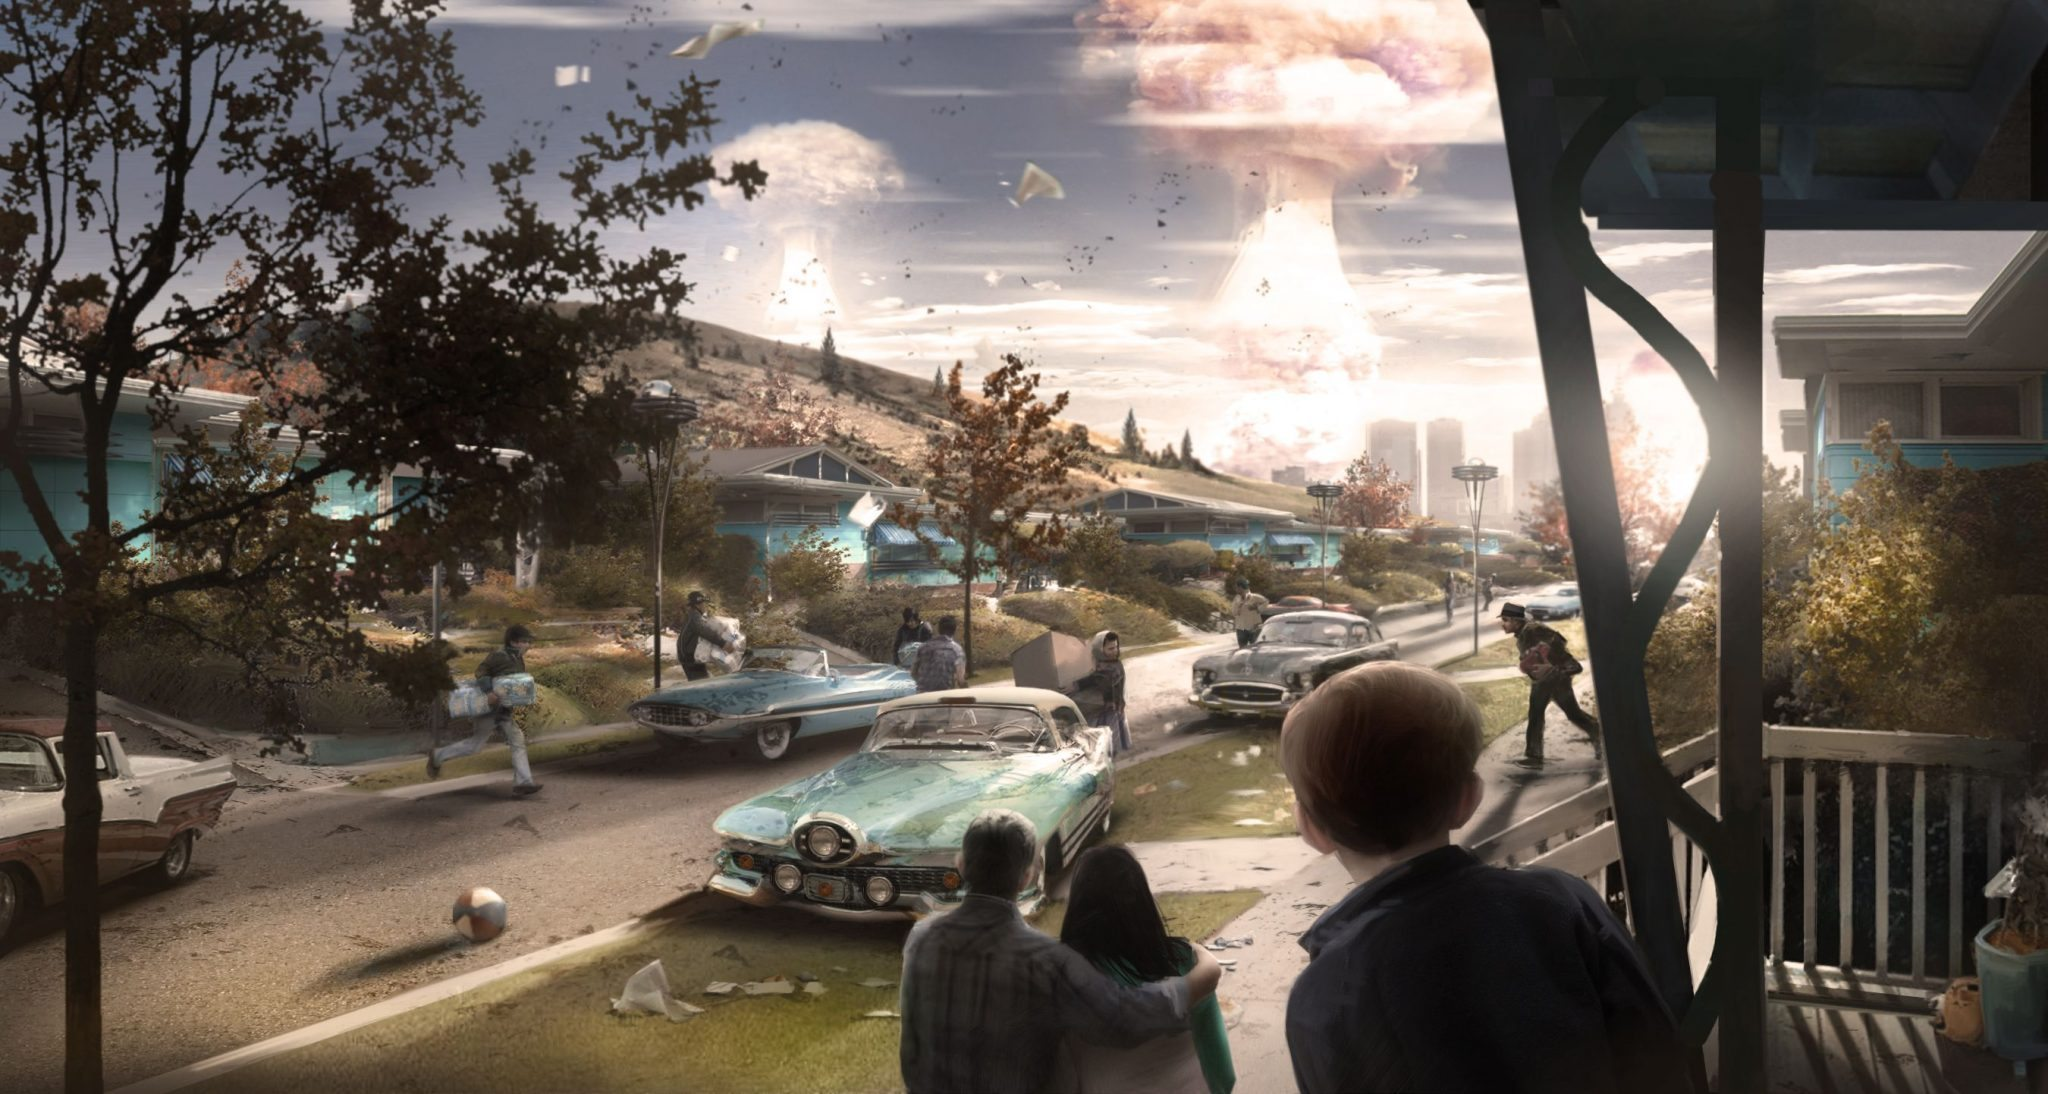 Fallout 4 Will Contain Over 400 Hours of Content